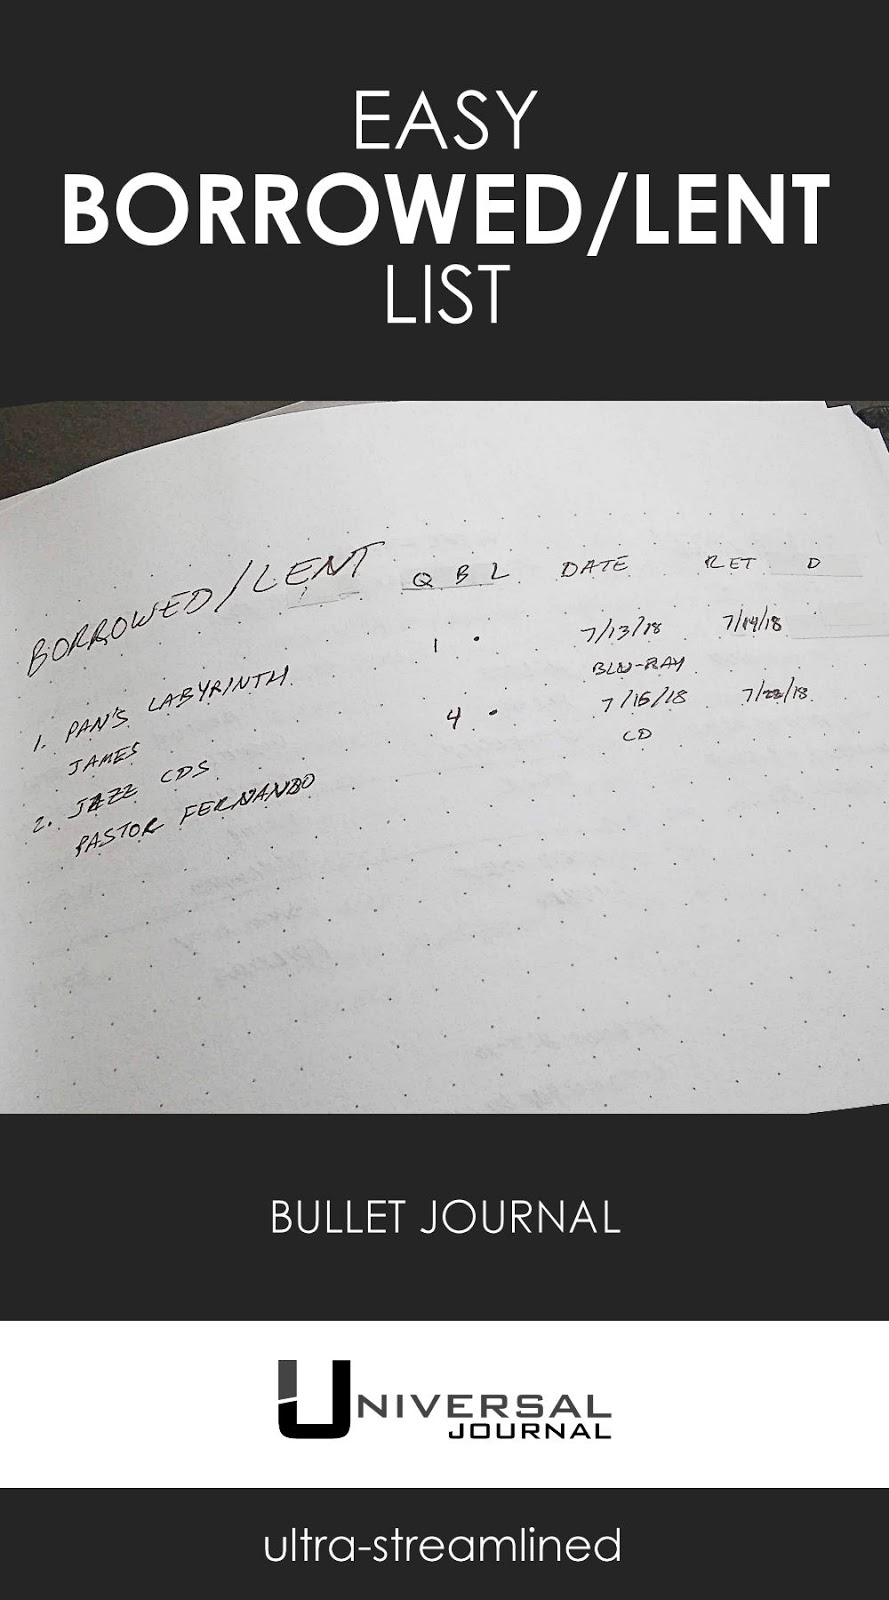 bullet journal easy borrowed lent list